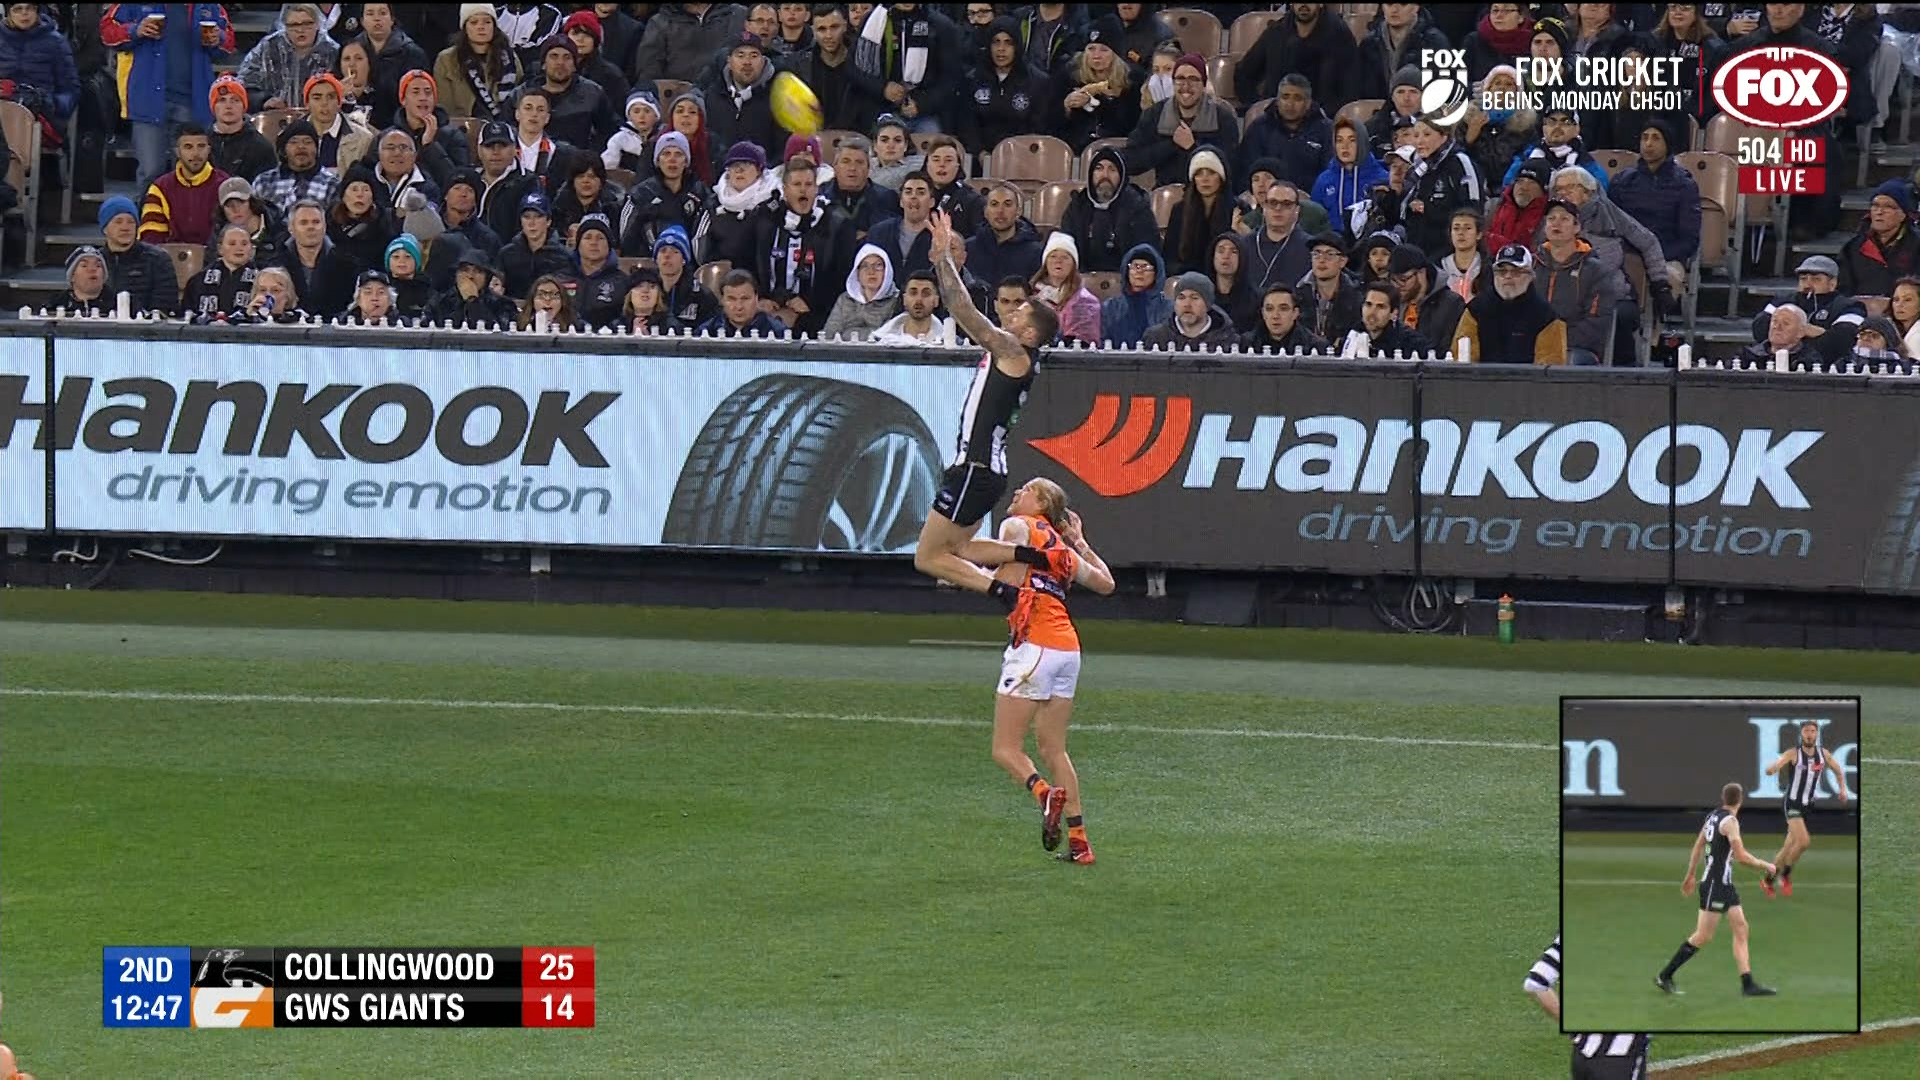 Collingwood vs GWS Giants: Jeremy Howe takes another epic ...